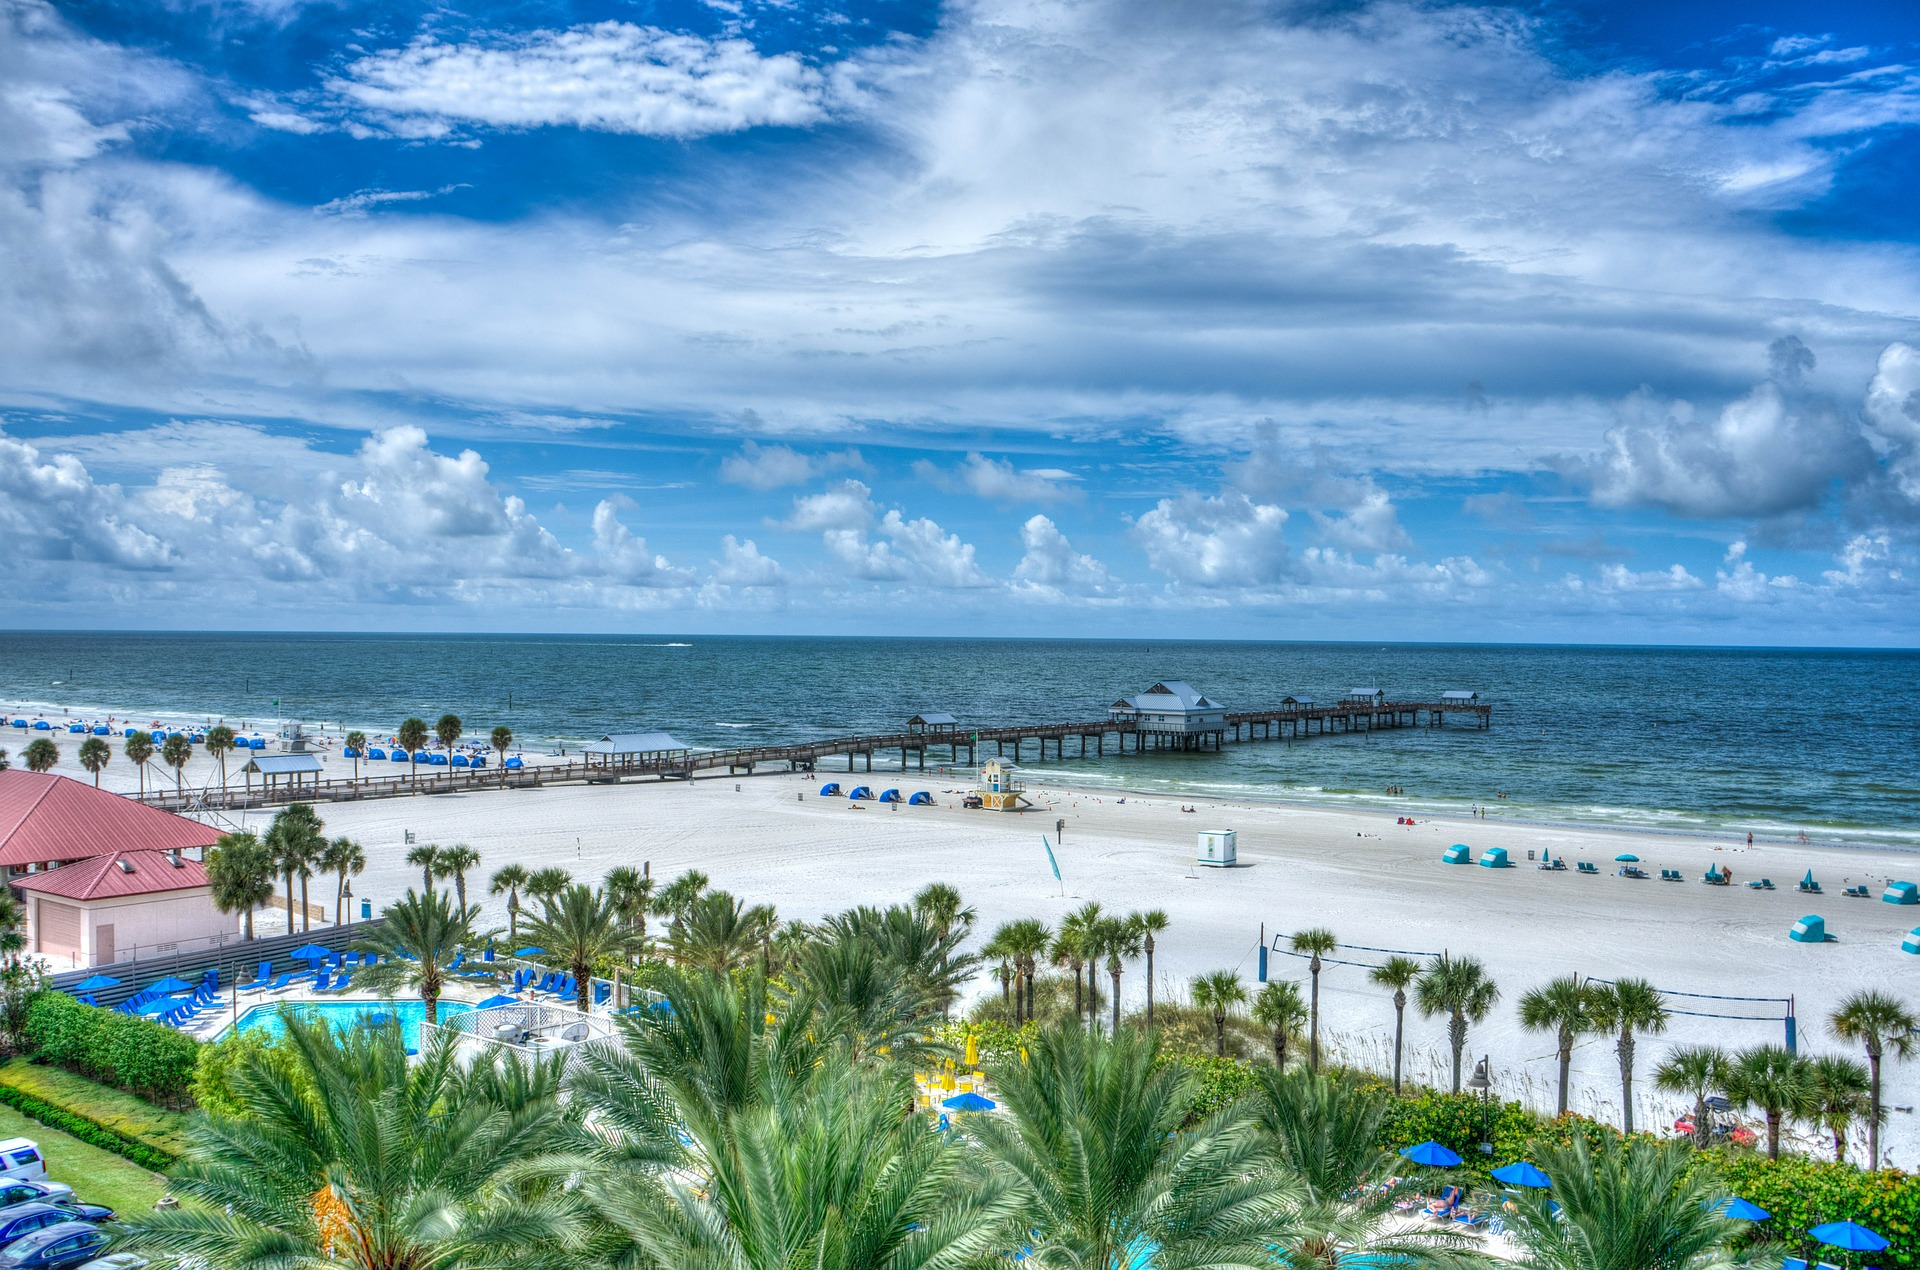 Long Range Weather Forecast For Clearwater Beach Florida